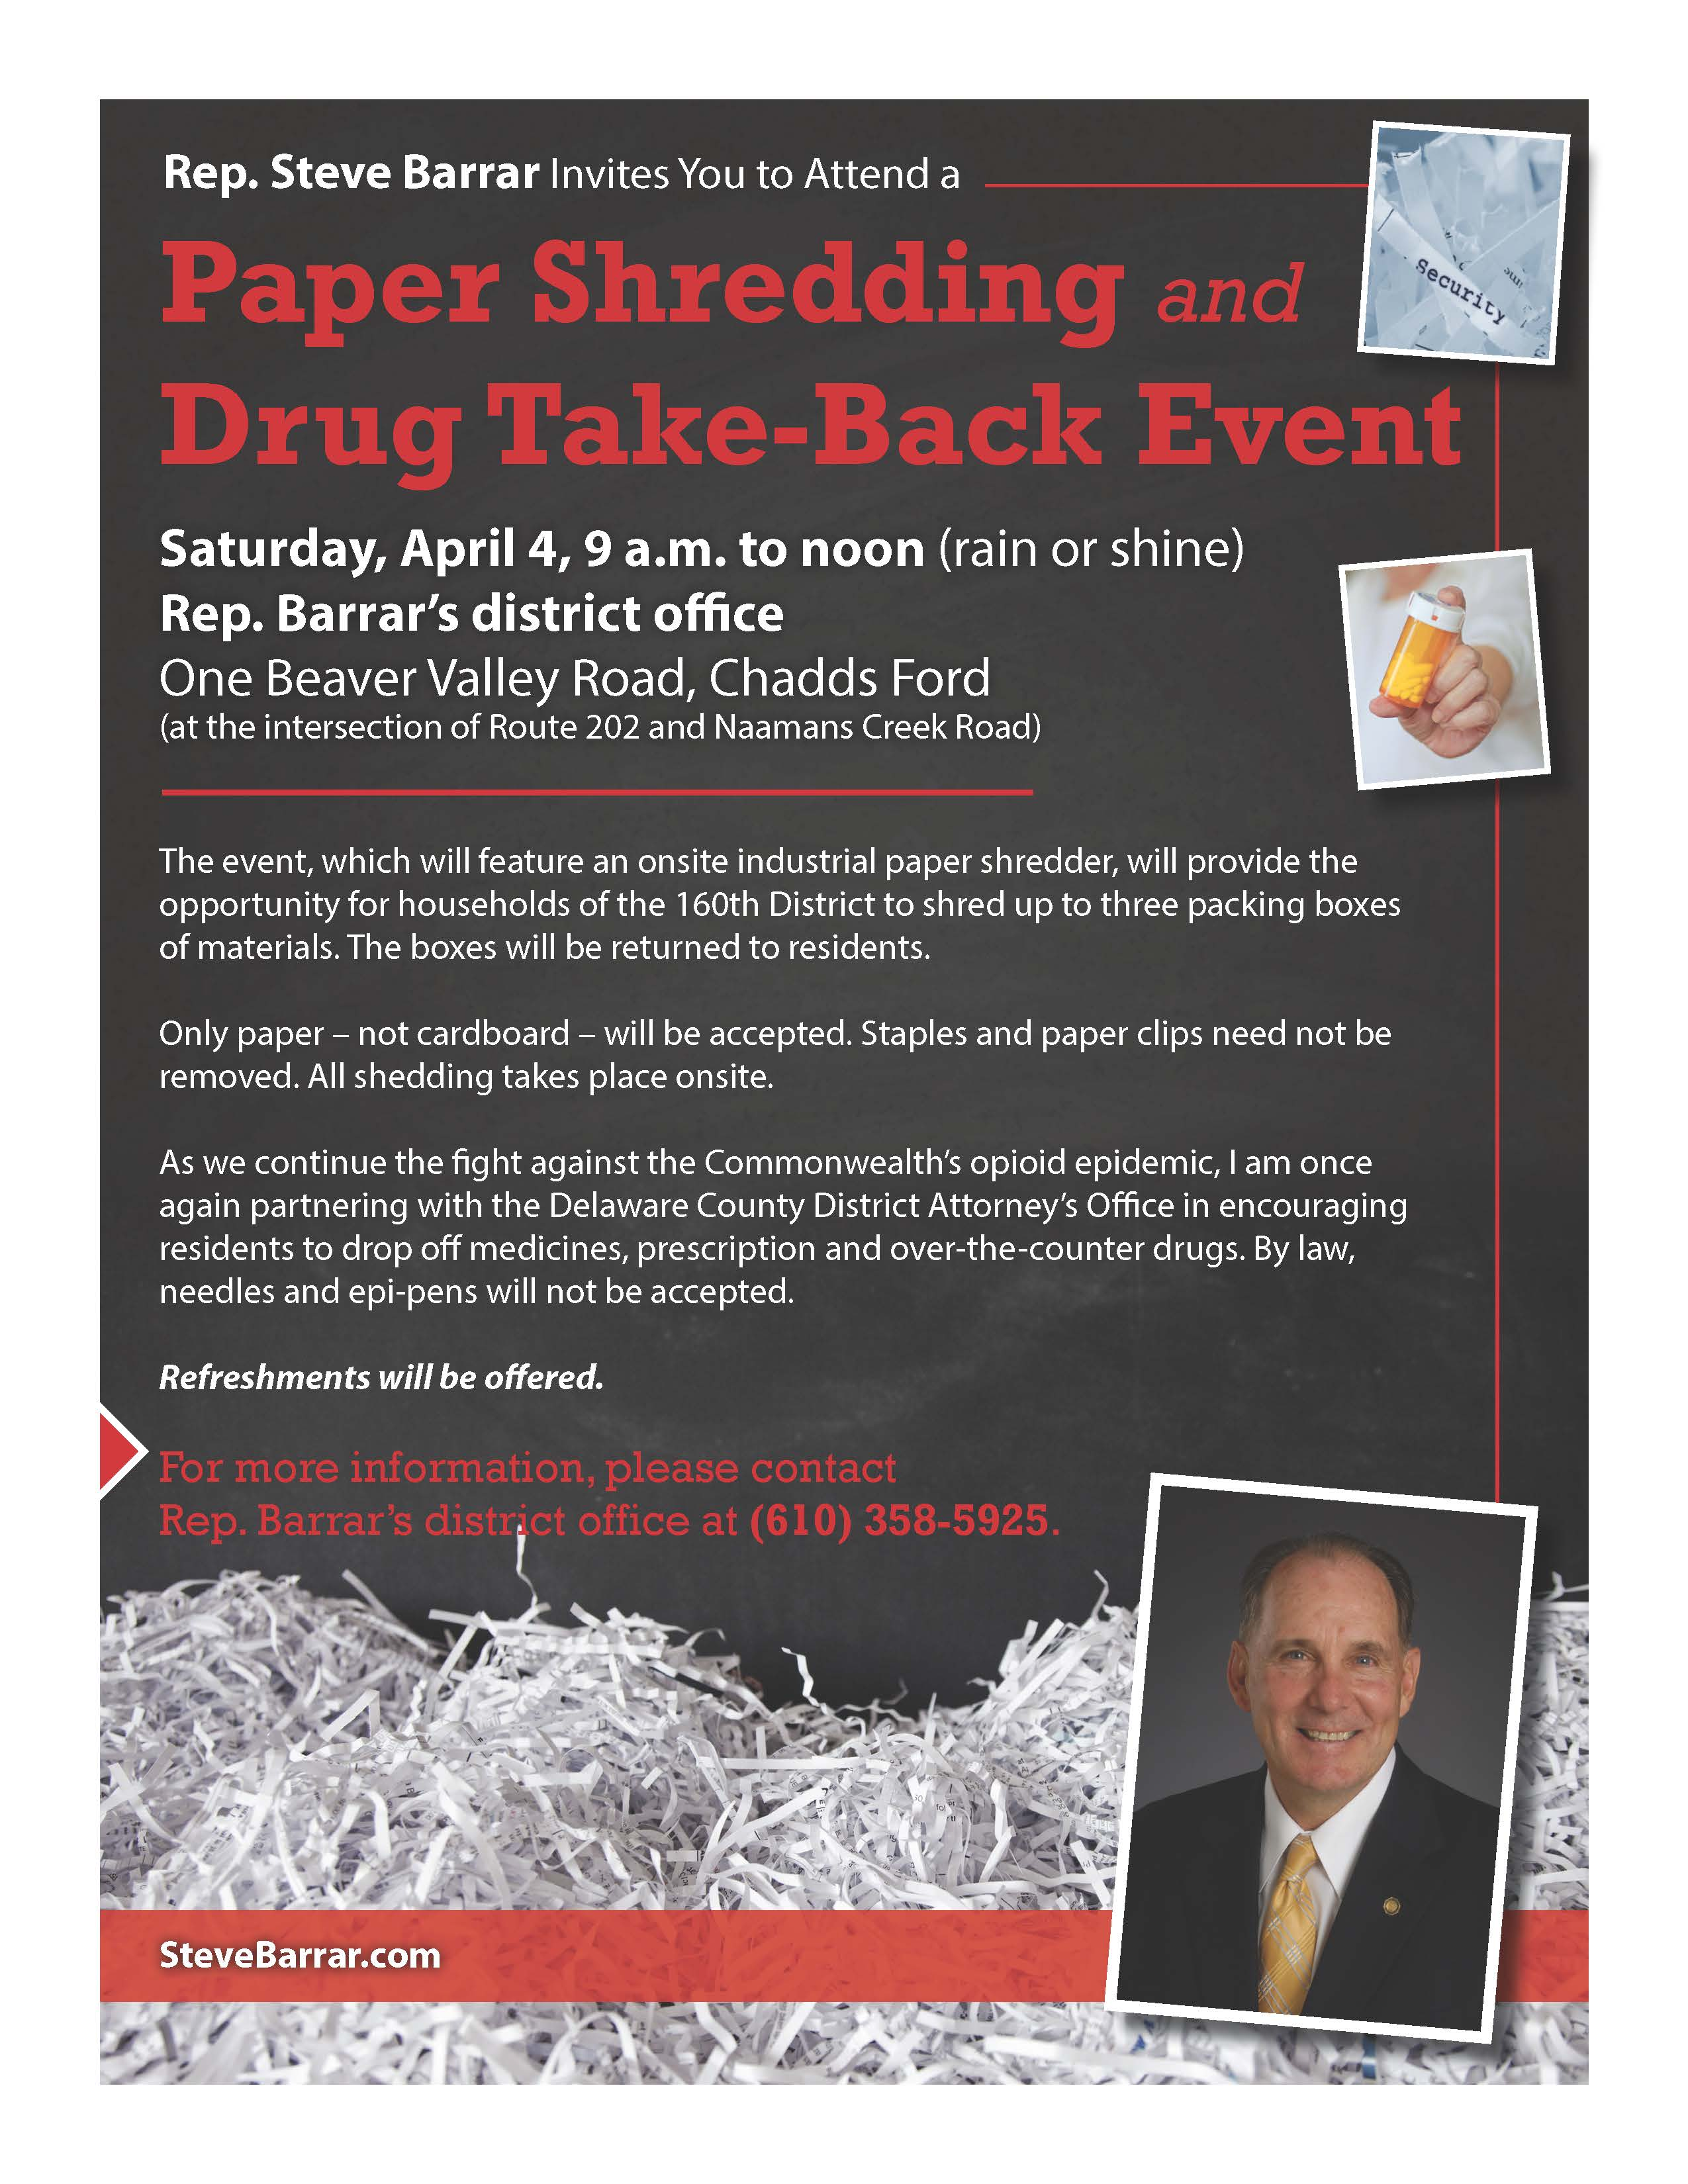 Barrar Shredding and Drug Take Back flyer_1-20